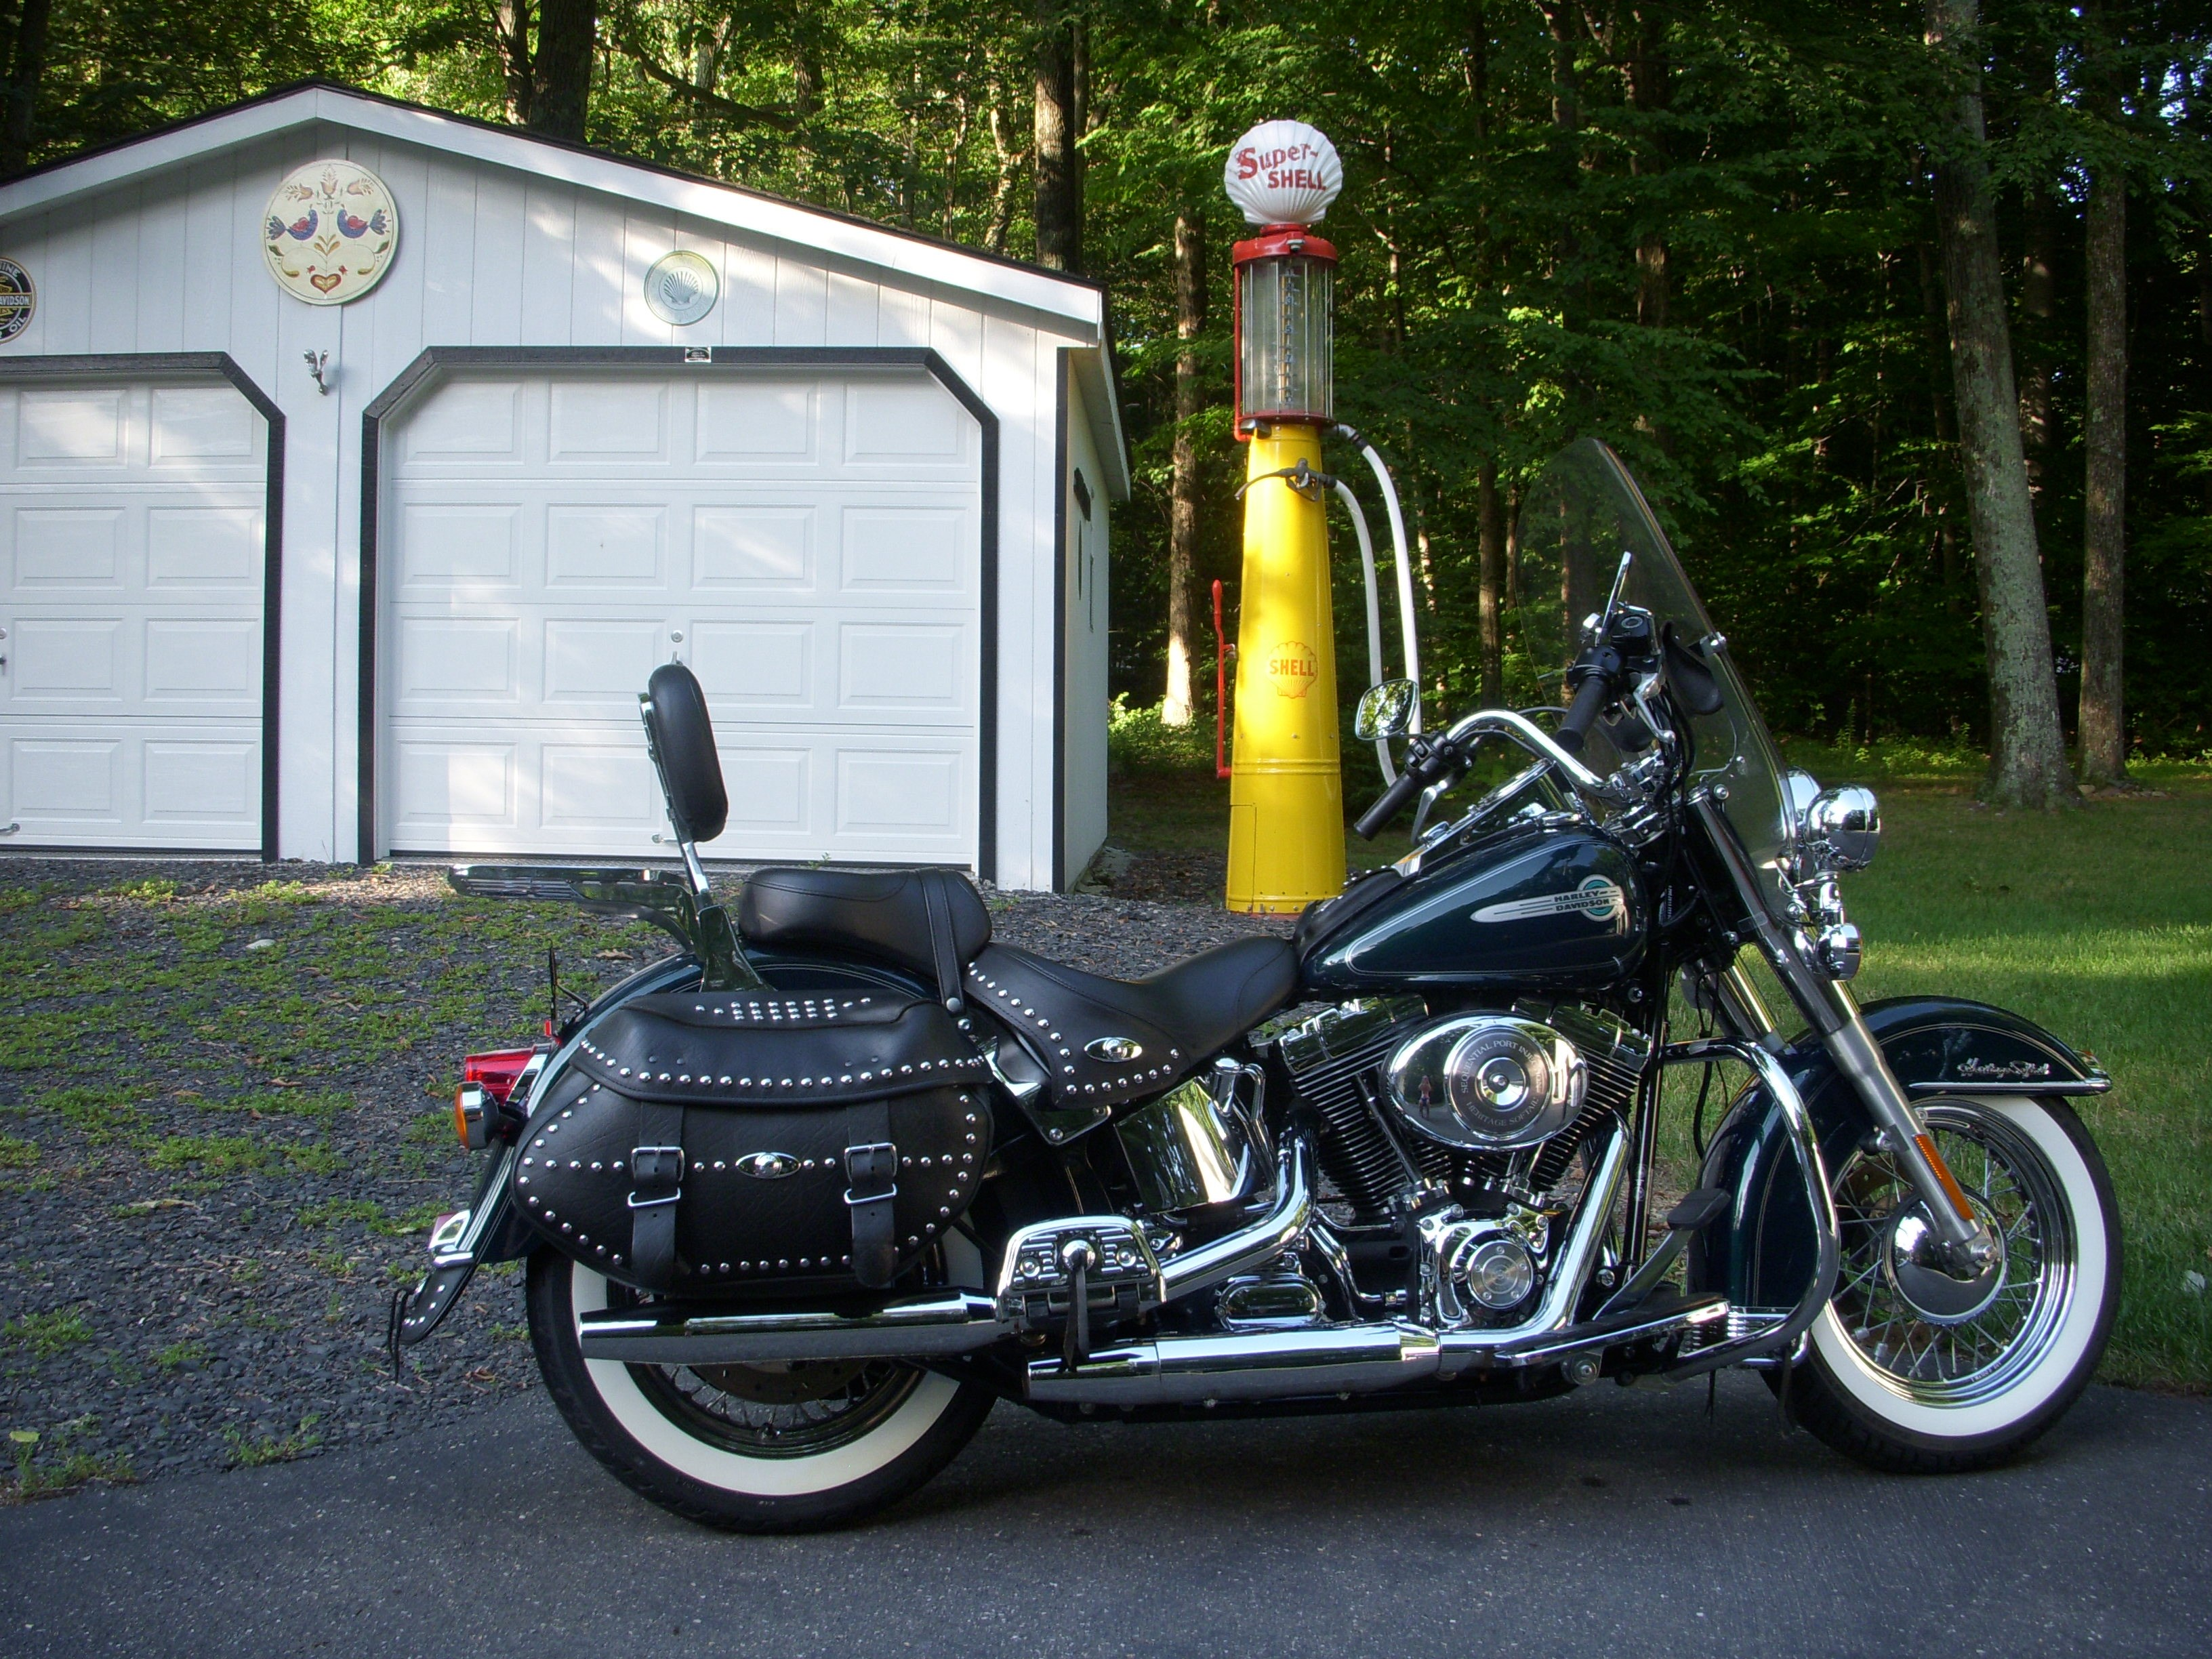 2002 harley davidson flstc i heritage softail classic jade sunglo pearl tannersville. Black Bedroom Furniture Sets. Home Design Ideas